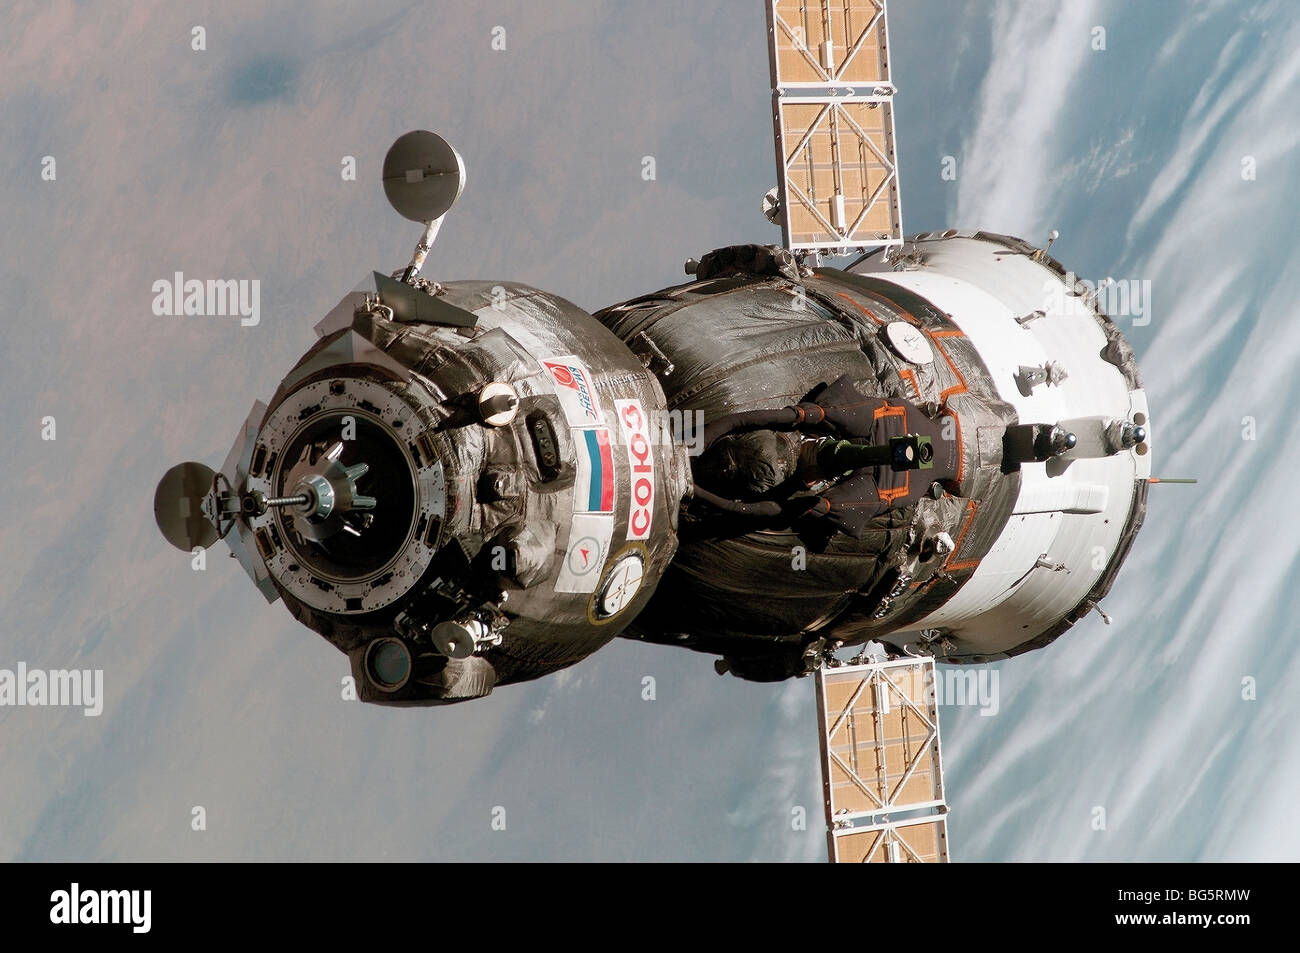 Soyuz TMA-6 spacecraft approaches thr international space station - Stock Image